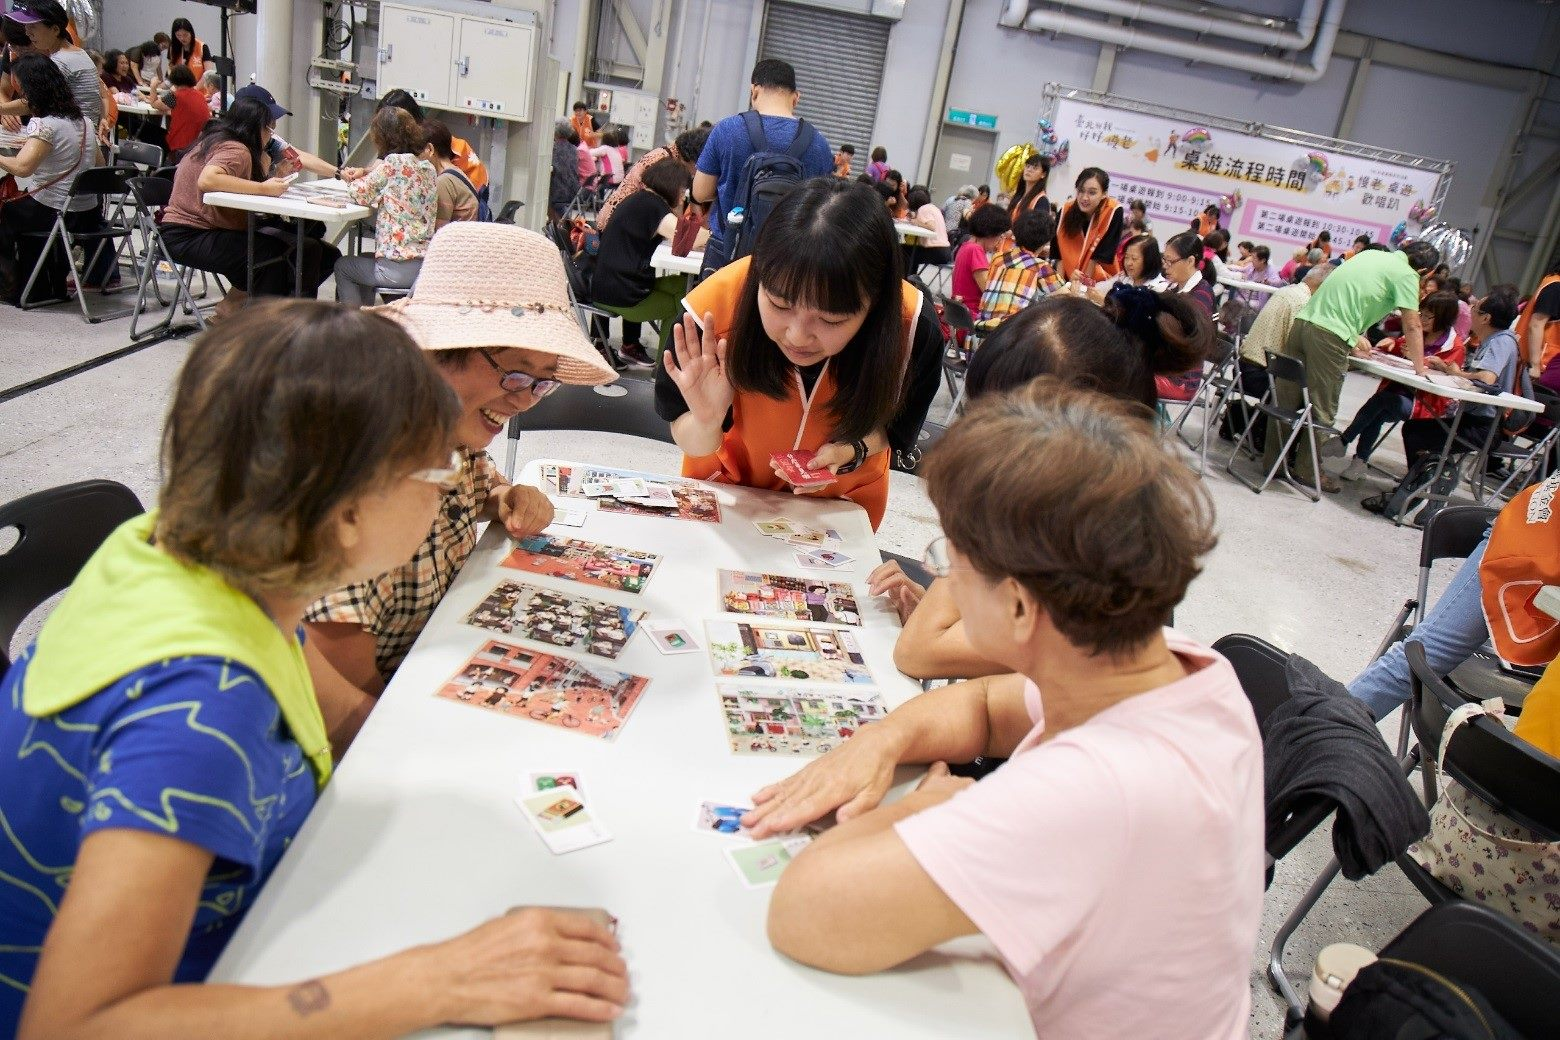 Students from the universities showed the elderly how to play table games